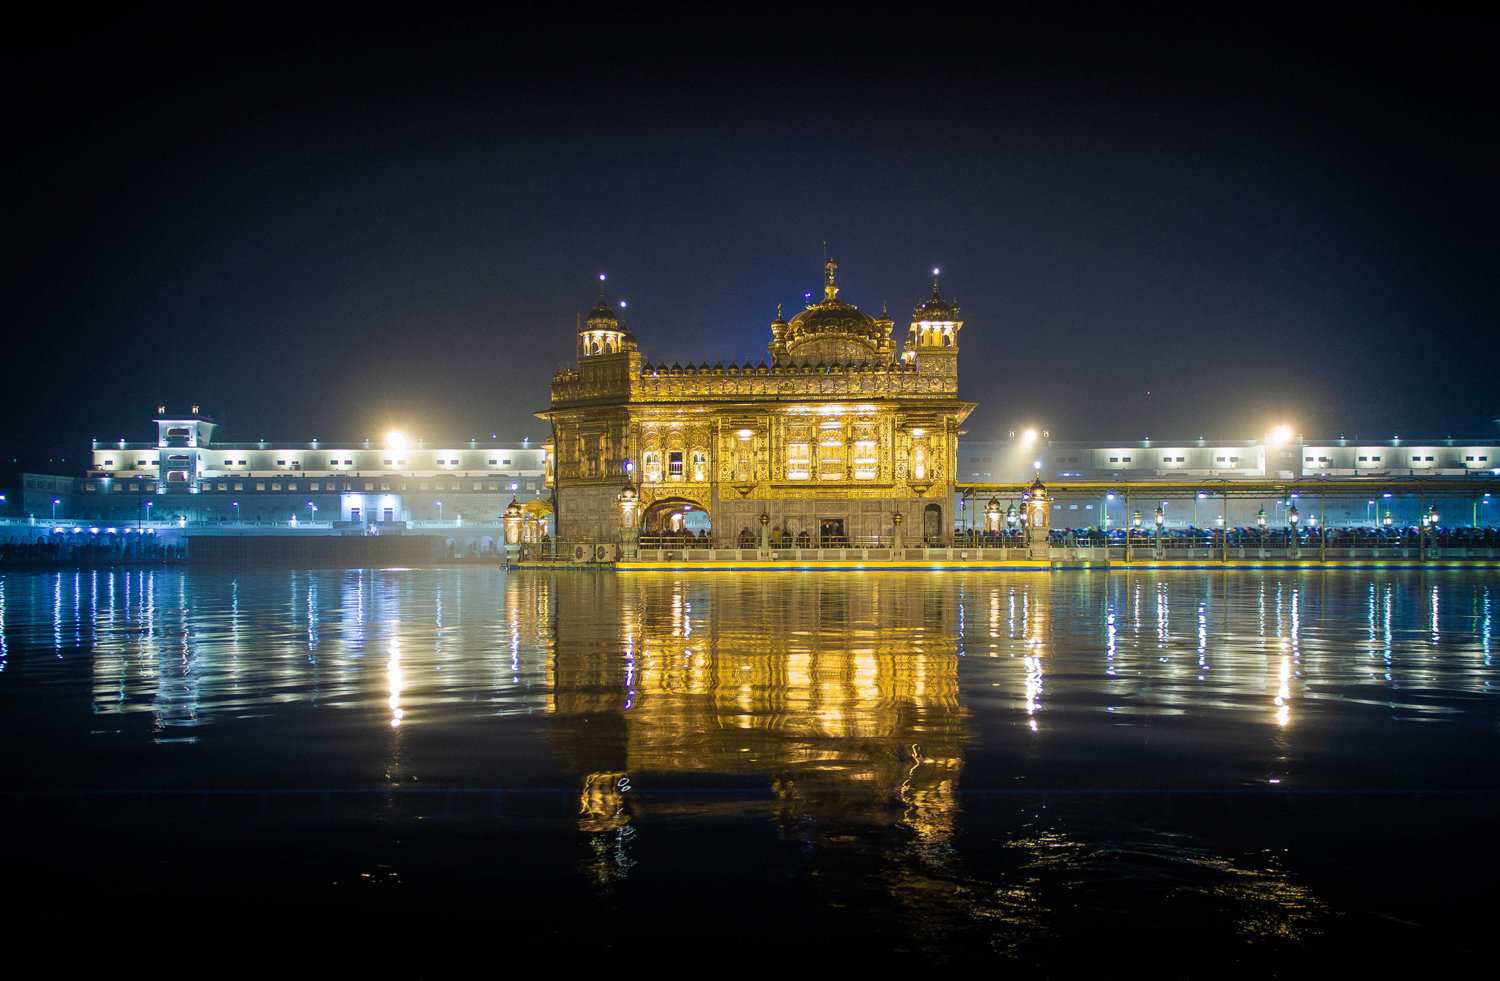 Golden-Temple -  Templo Dorado, India - Claudio Ramírez fotógrafo de naturaleza y paisajes, outdoor photographer